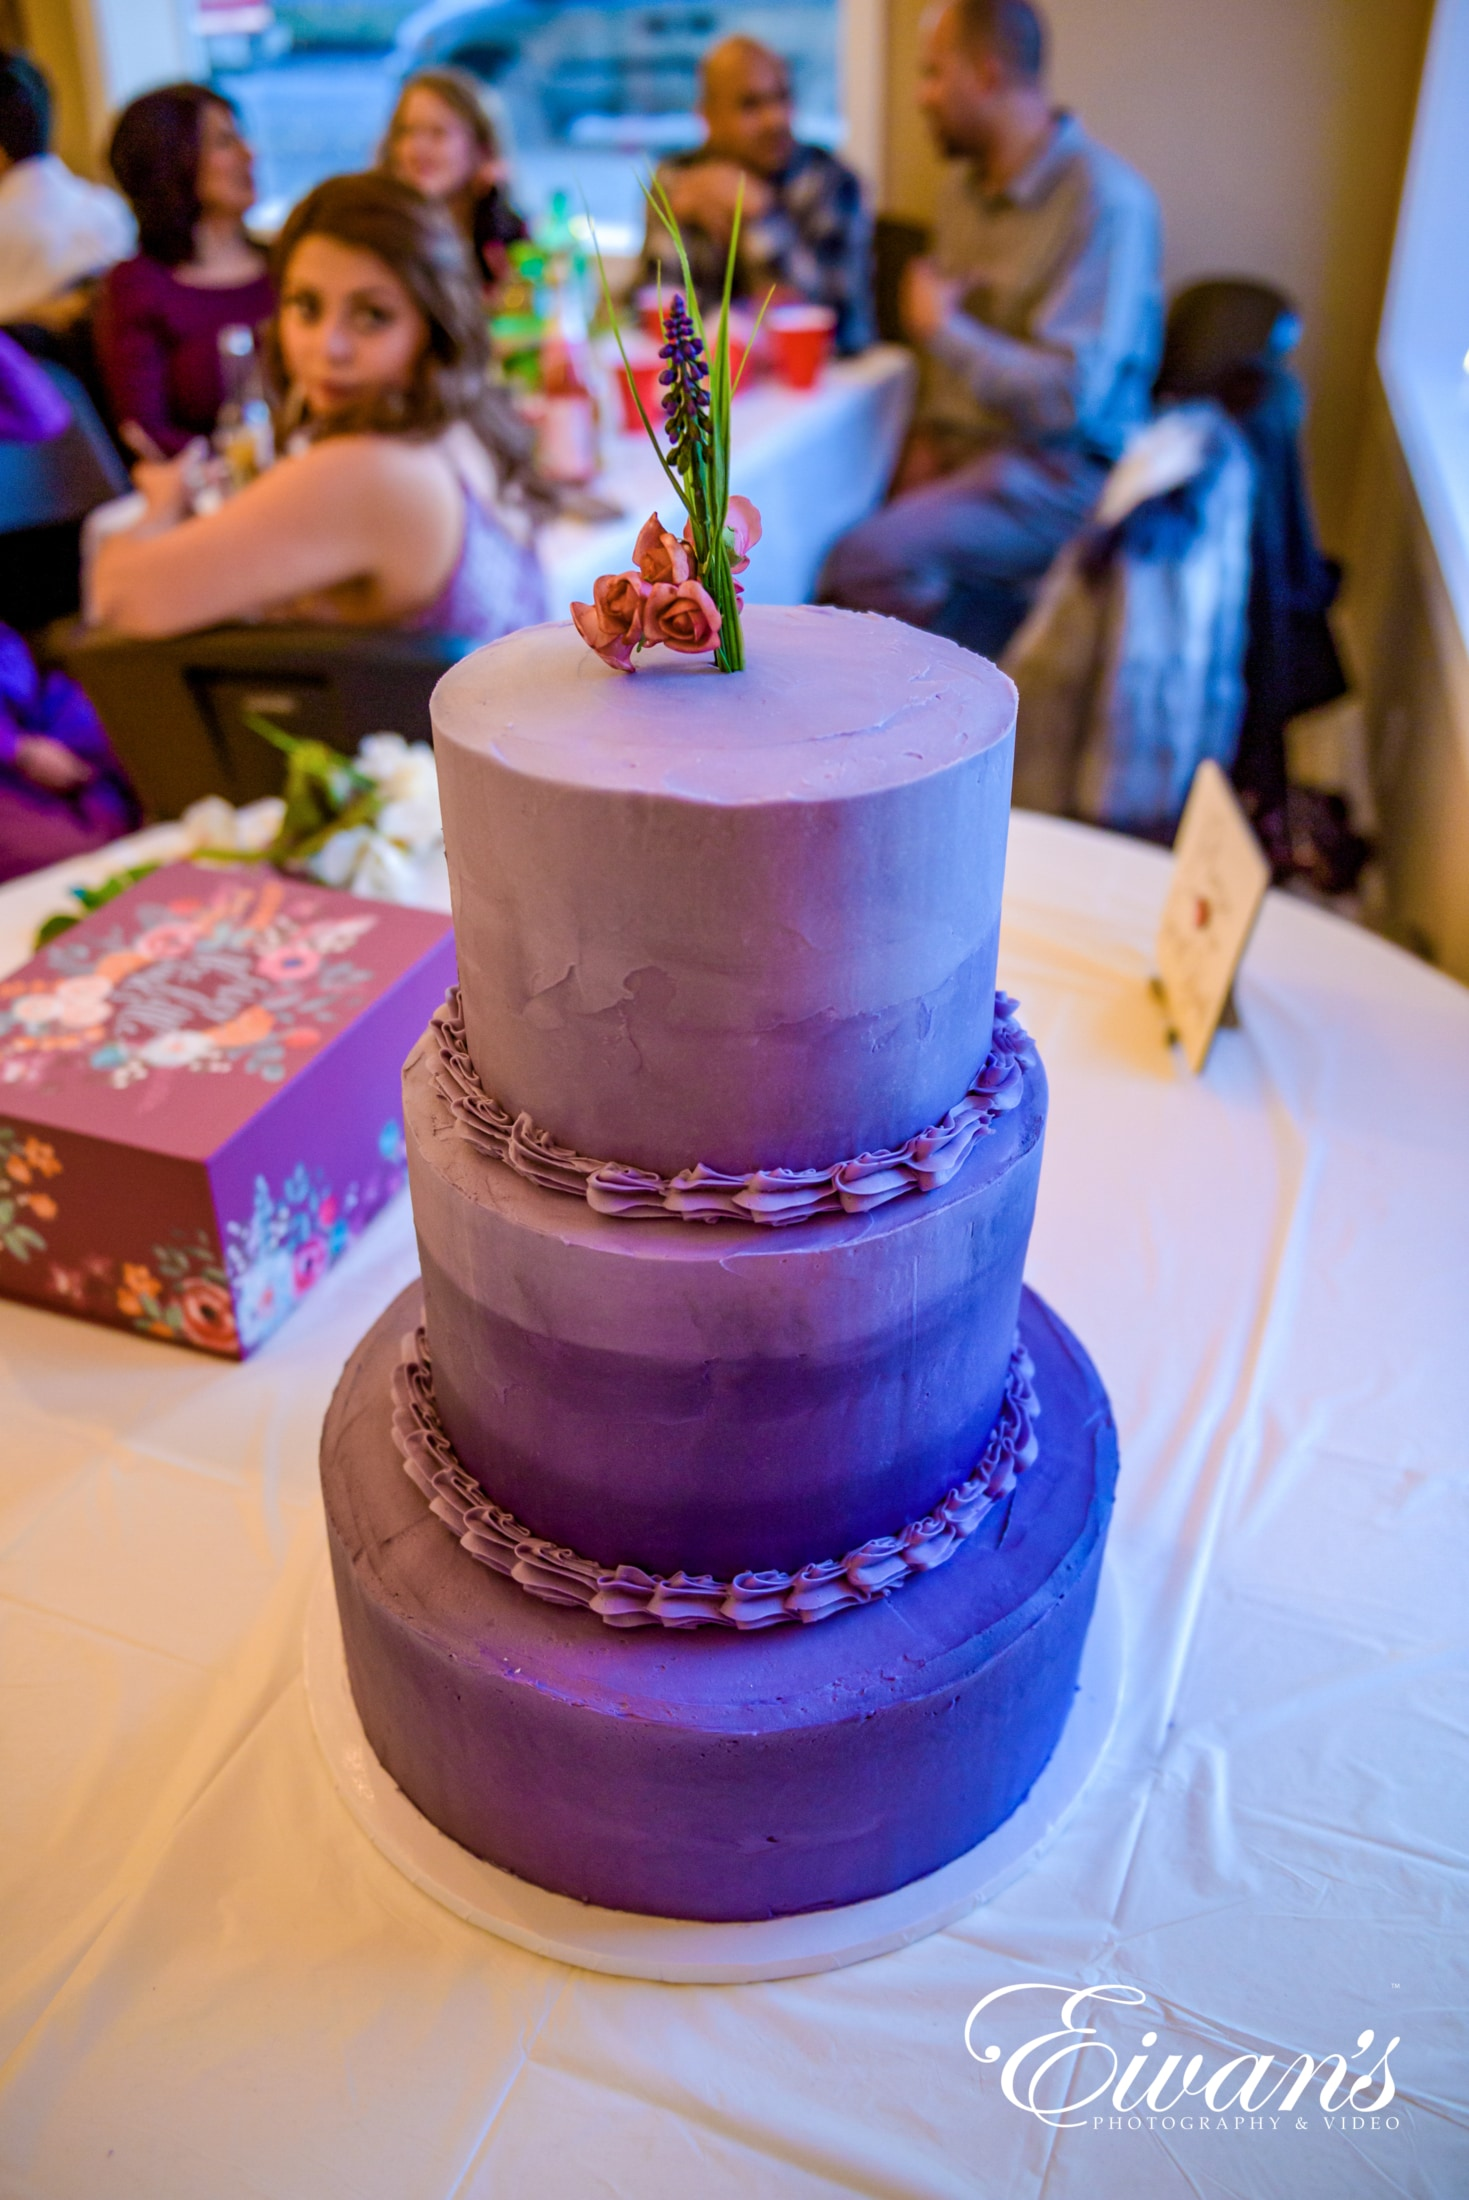 image of a three teared cake with purple frosting on it